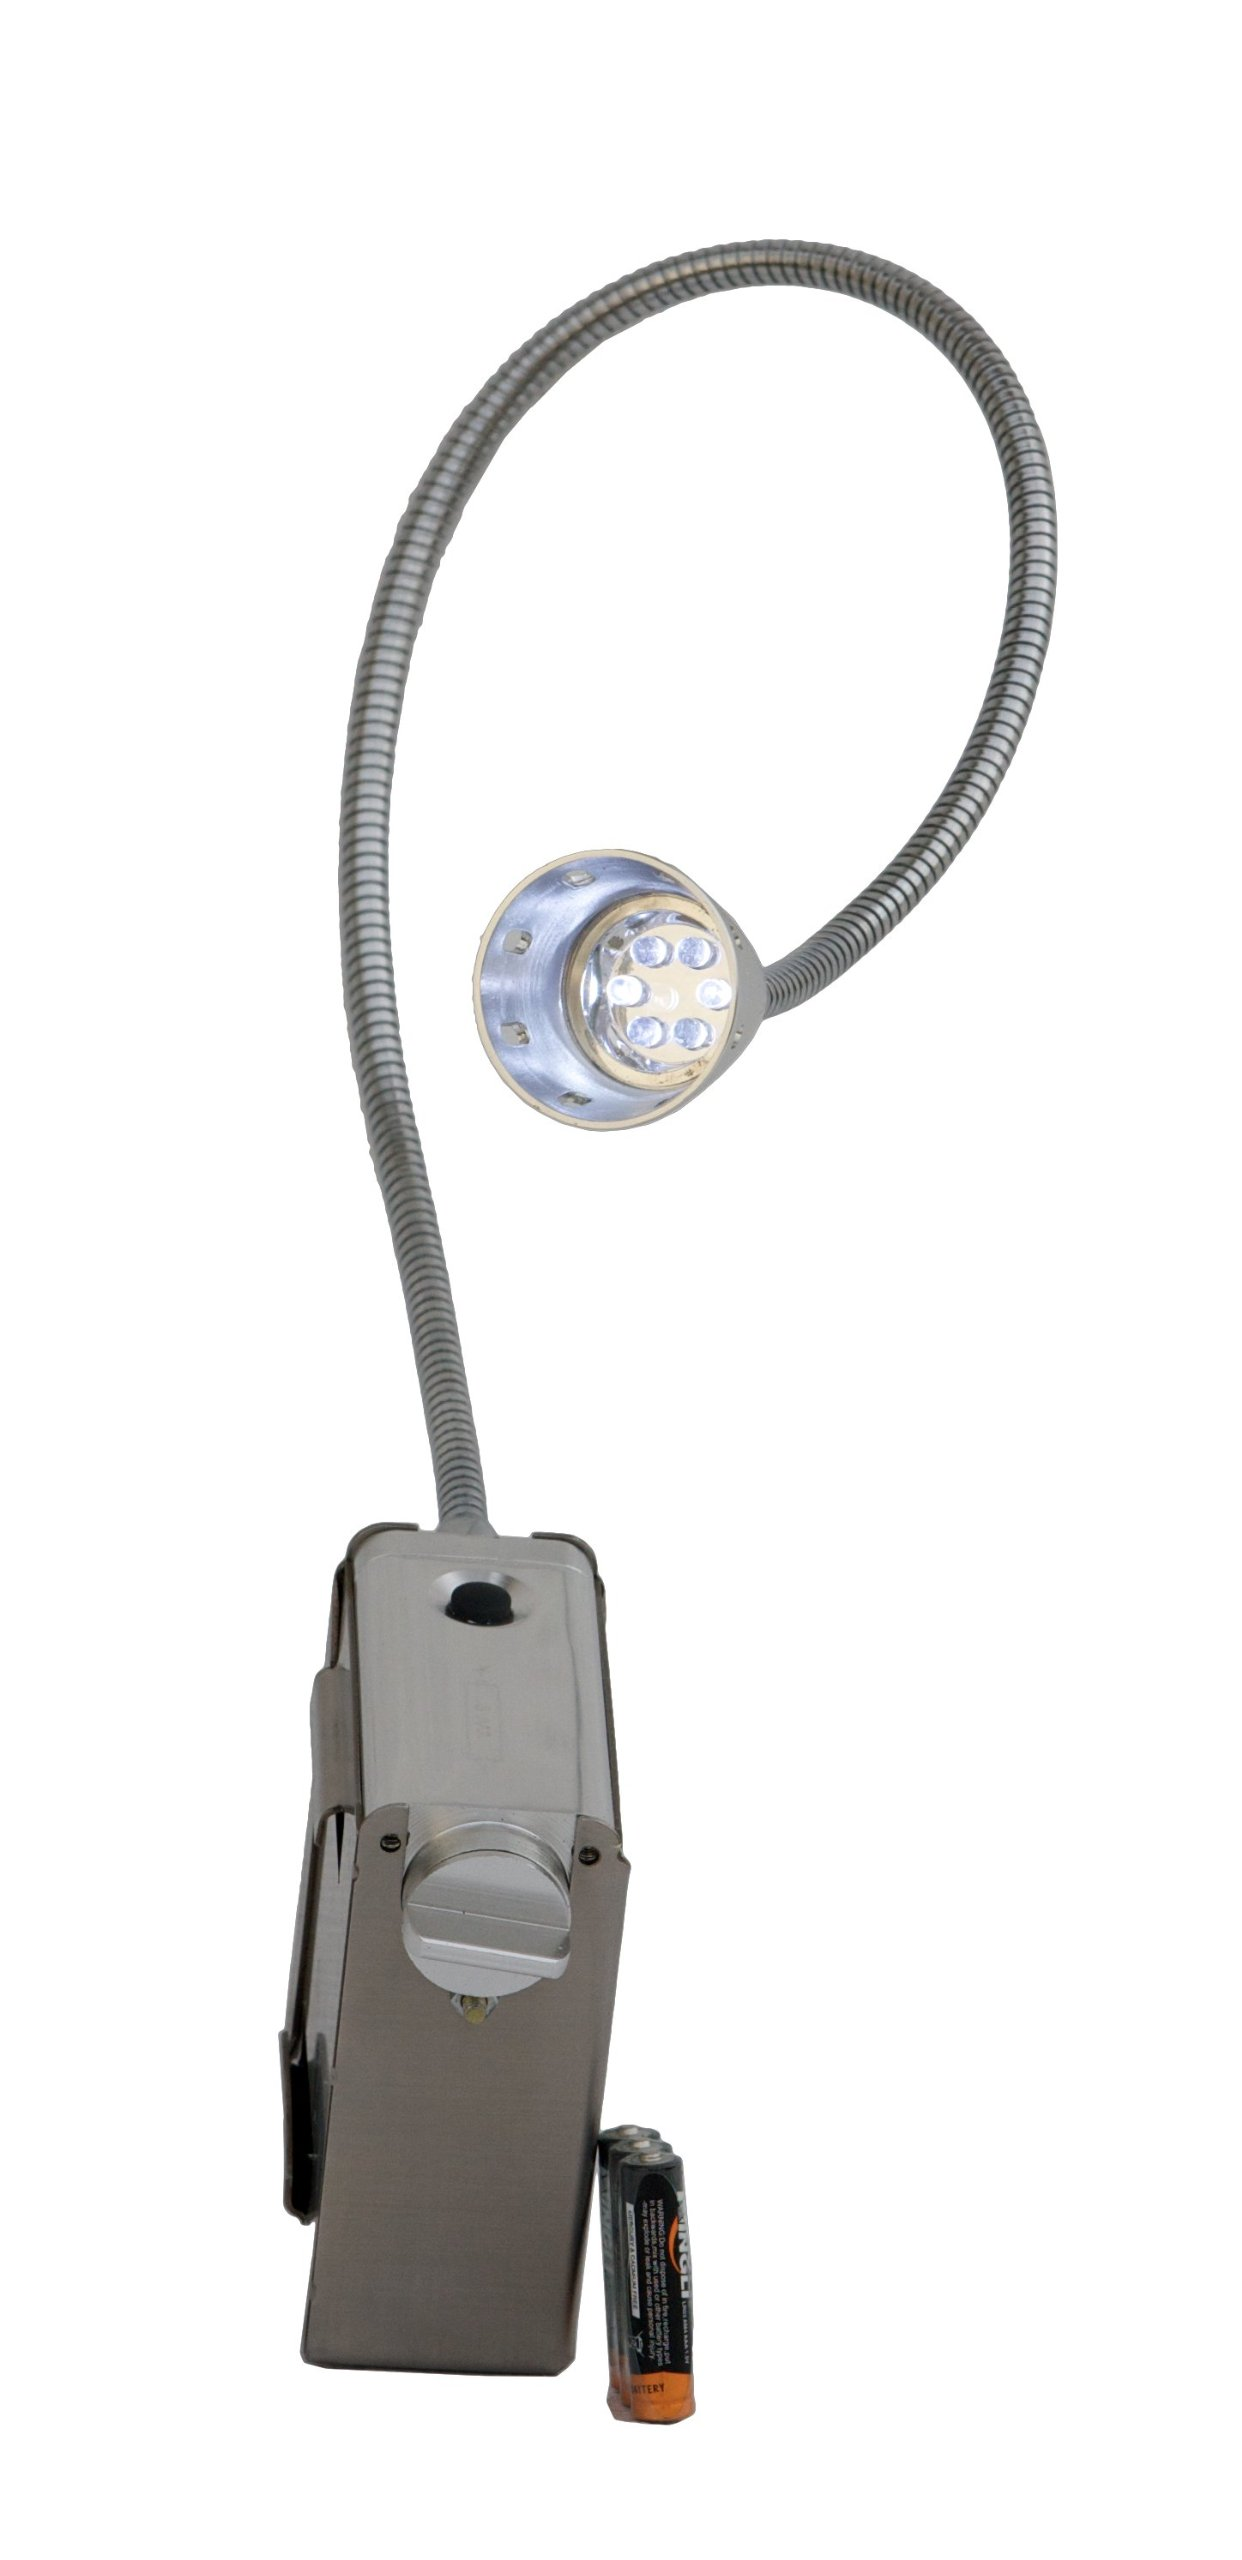 Solaire Stainless Steel Battery-Operated Light for Solaire Grills by Solaire